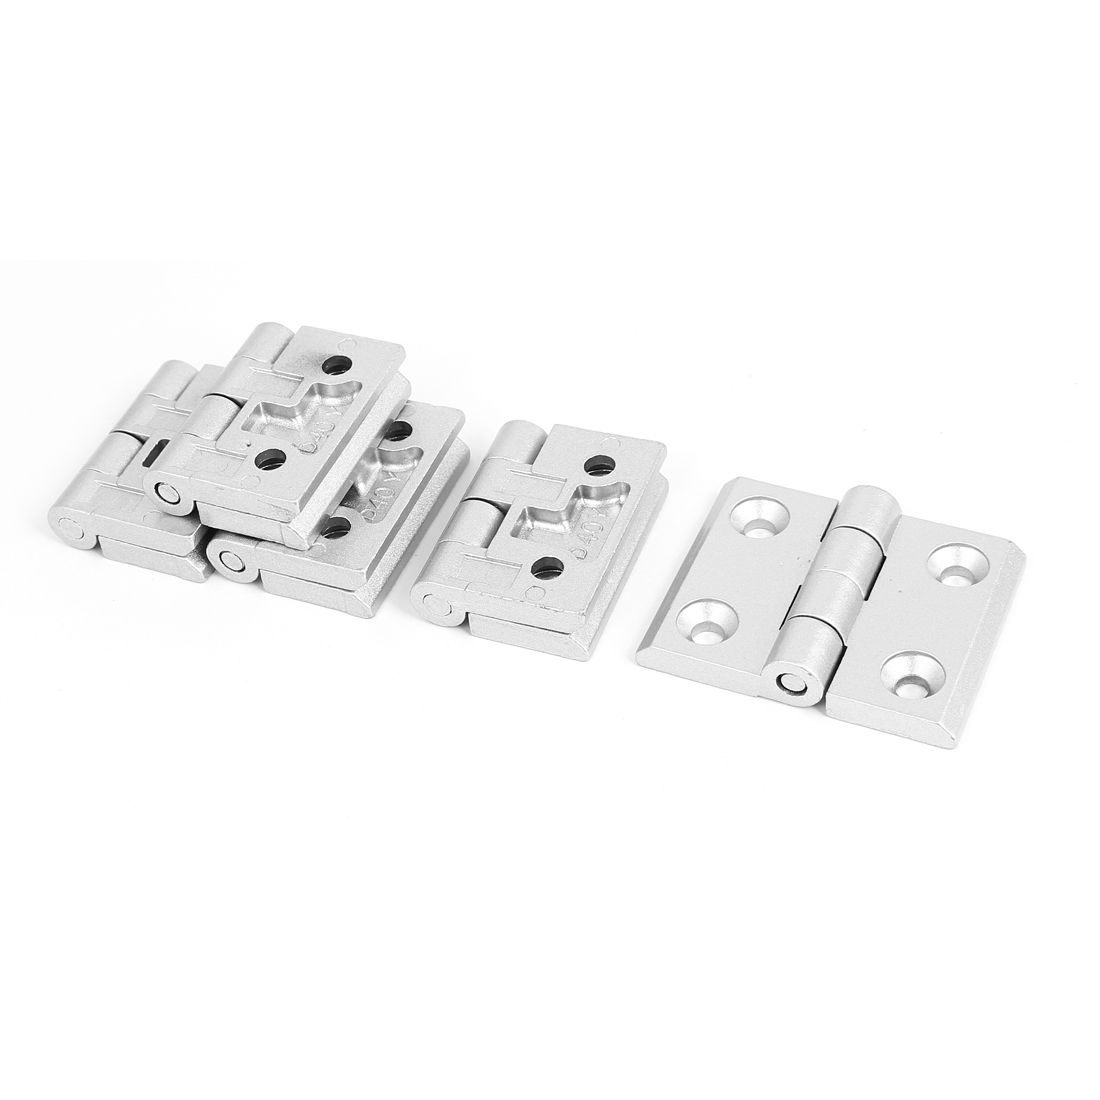 64mm x 50mm 2 Leaves Door Bearing Reinforced Butt Hinge Silver Tone 5pcs